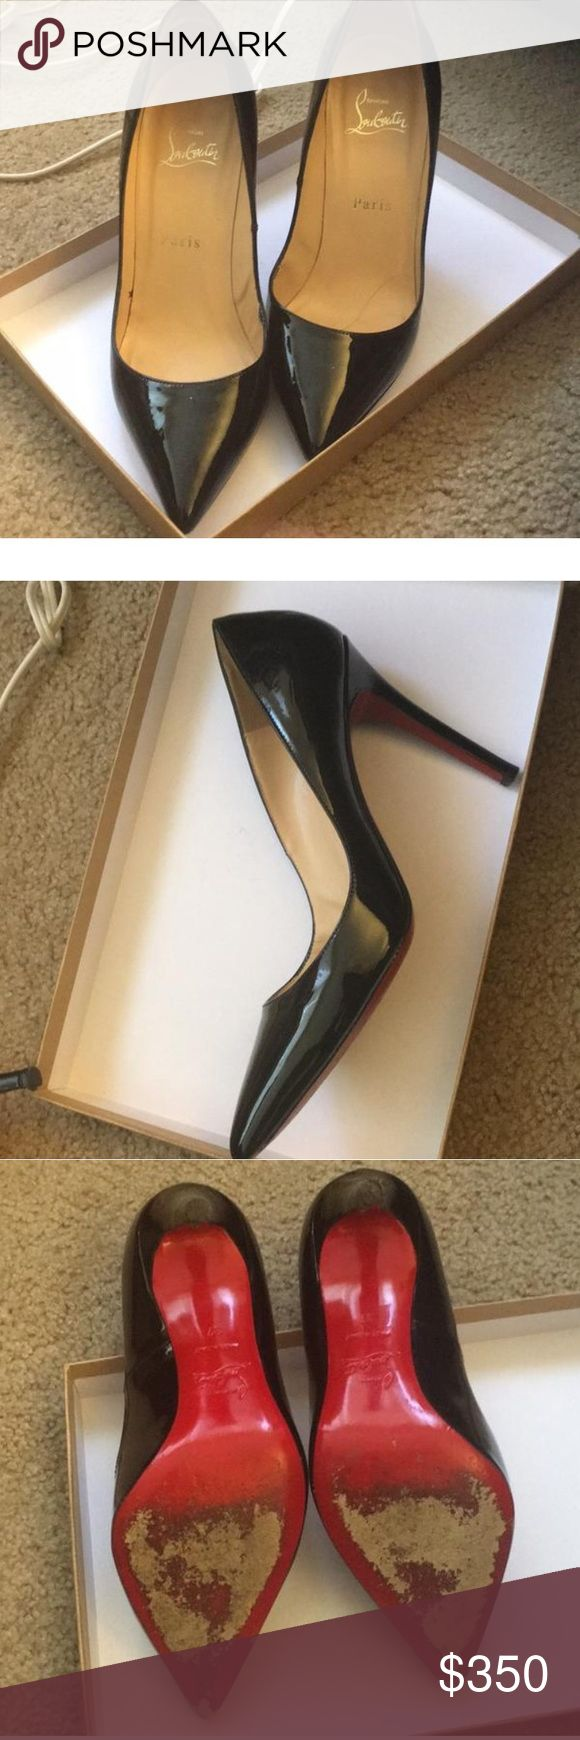 christian louboutin pigalle 100 price